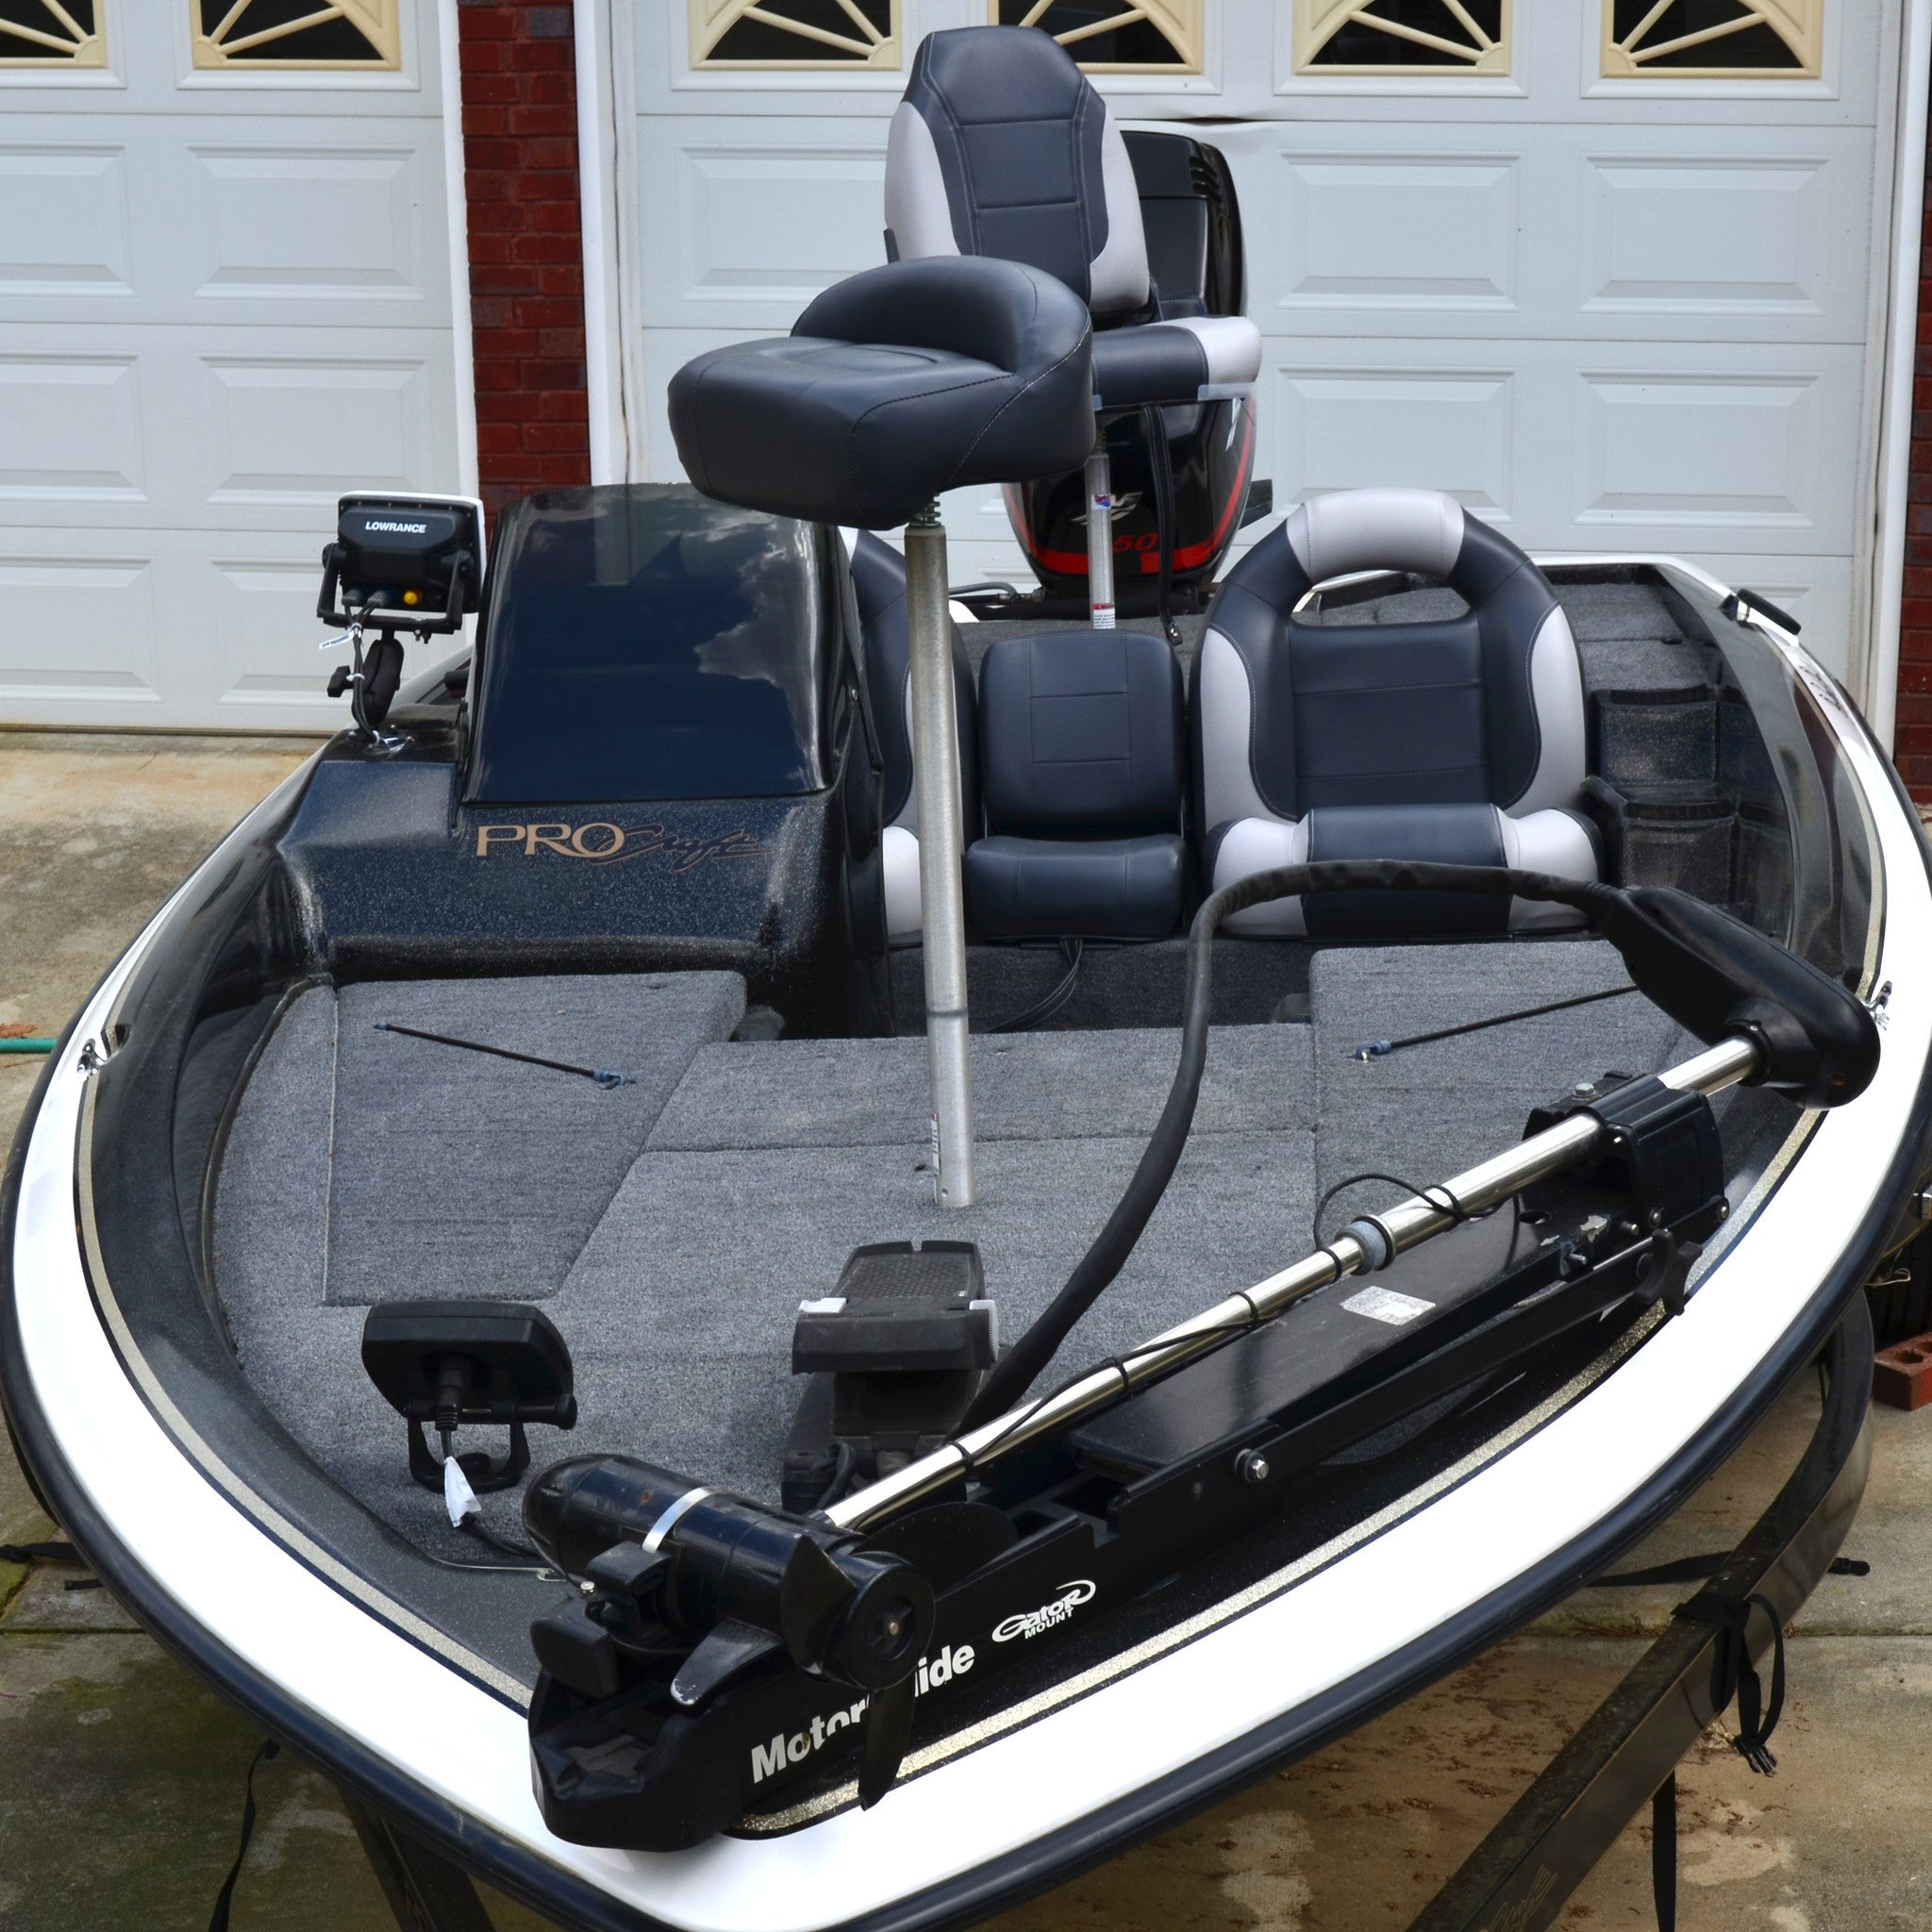 Bass Boat Seat Interior 2 | Boat Seats